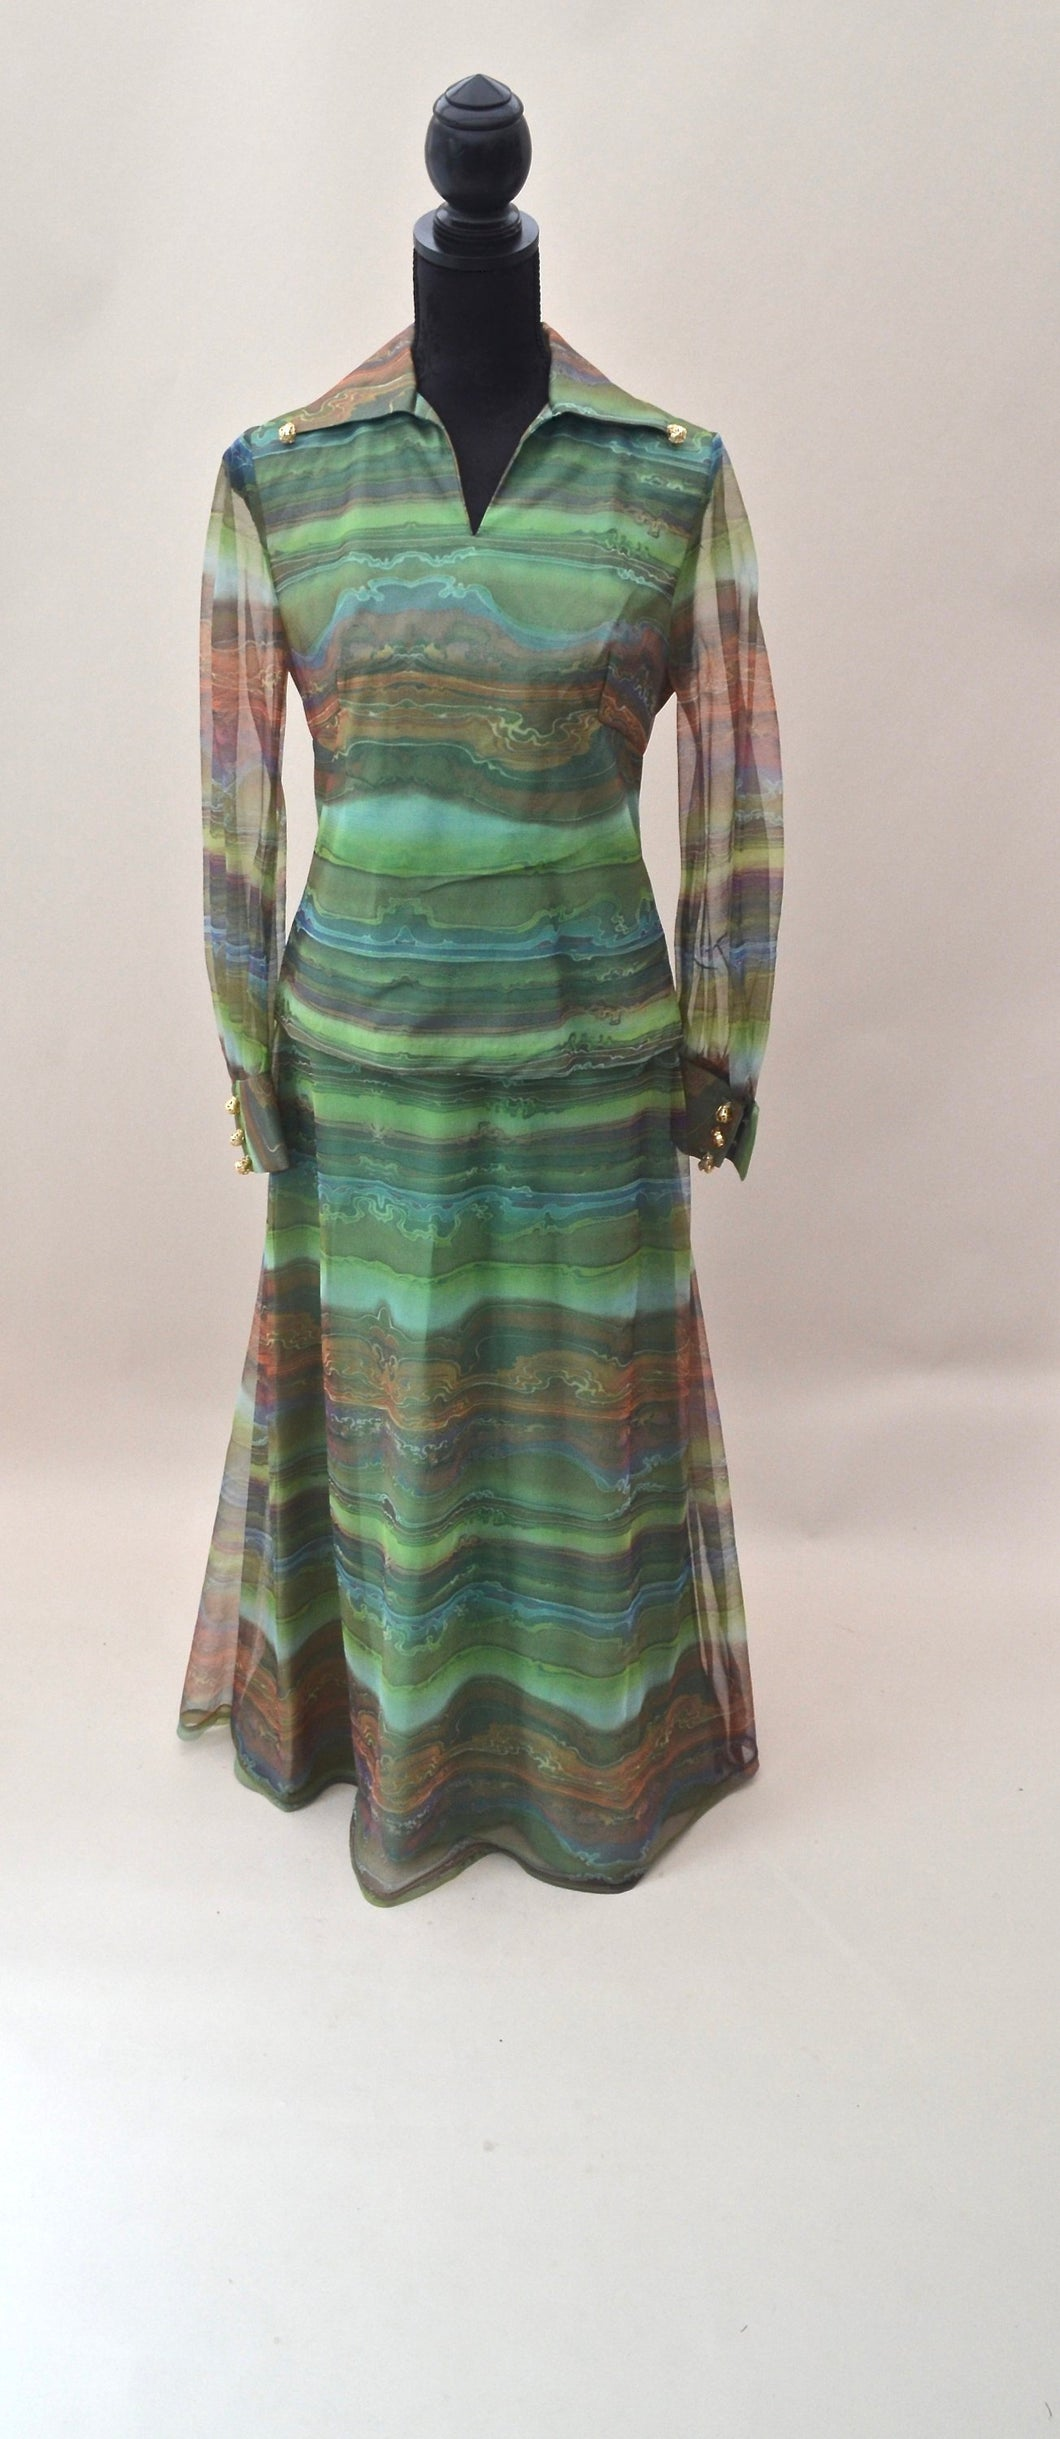 1970s Two piece jacket & skirt in greens and browns, Est UK size 8